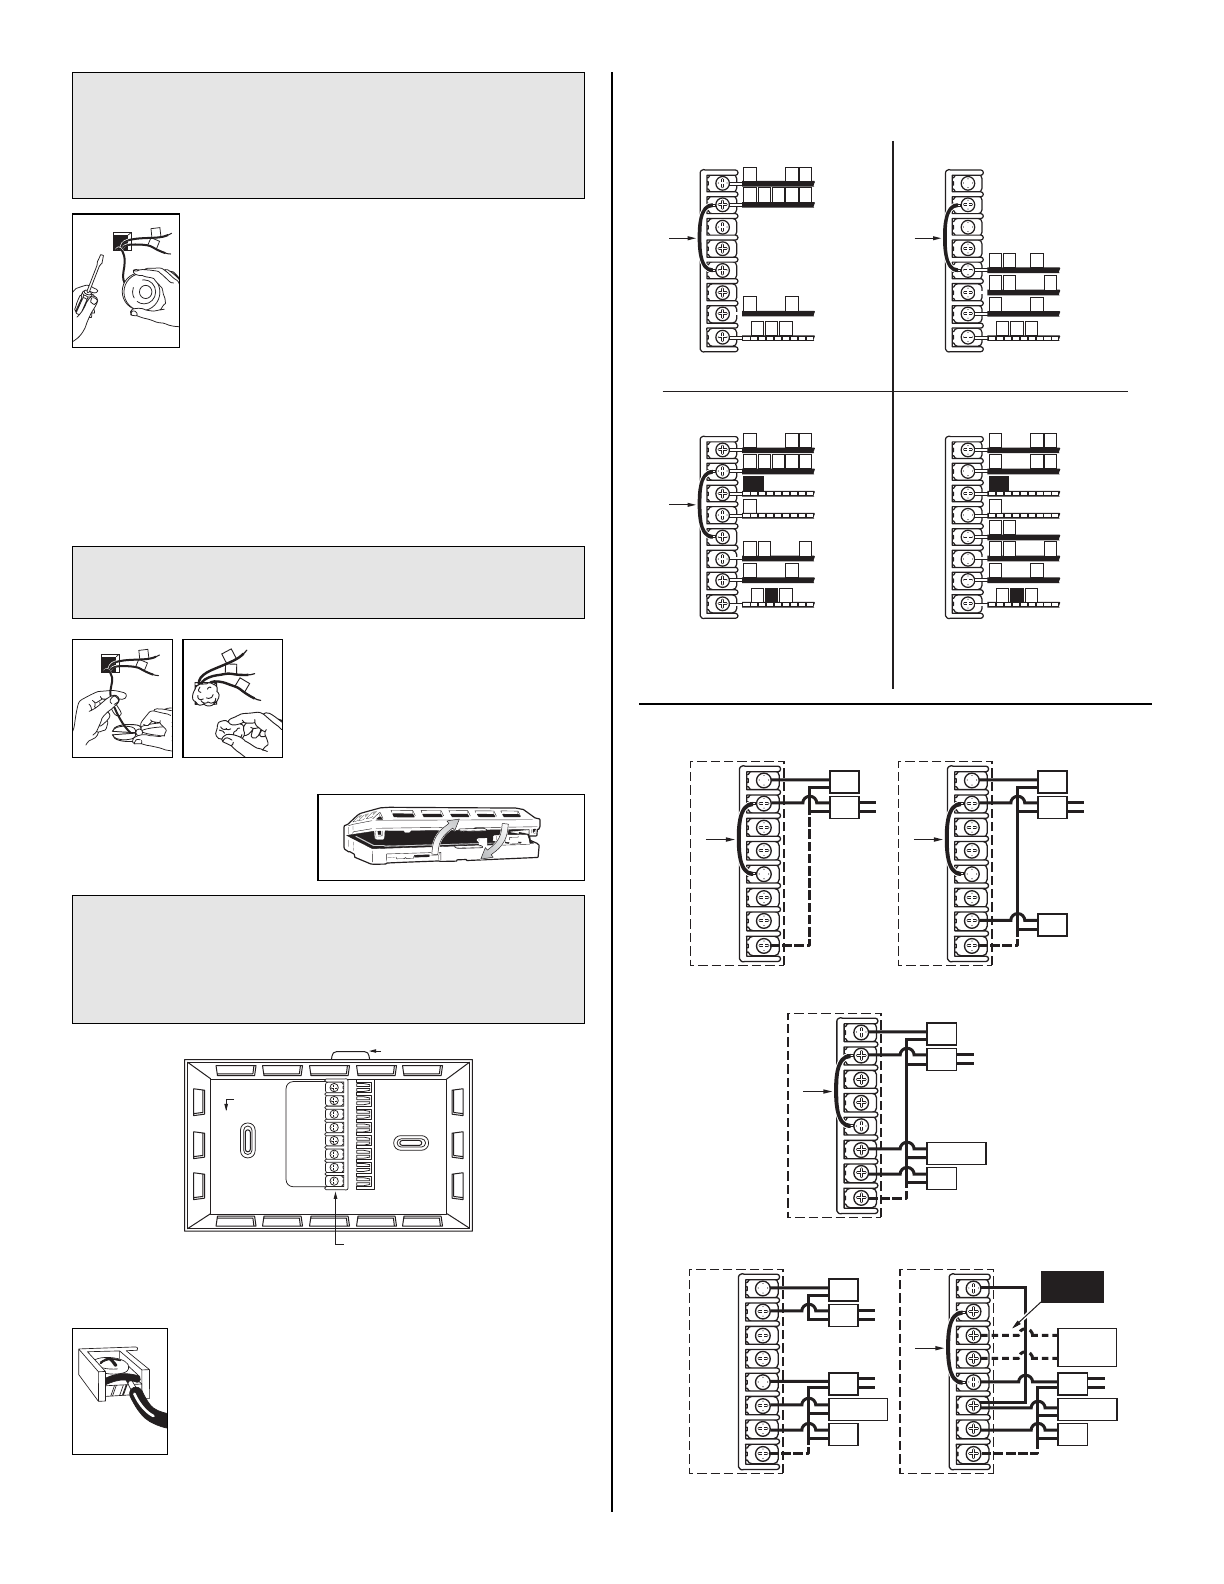 503640f6 2371 44b1 8409 35d34d22f5f2 bg2 page 2 of lux products thermostat psd111 user guide luxpro psd111 wiring diagram at soozxer.org